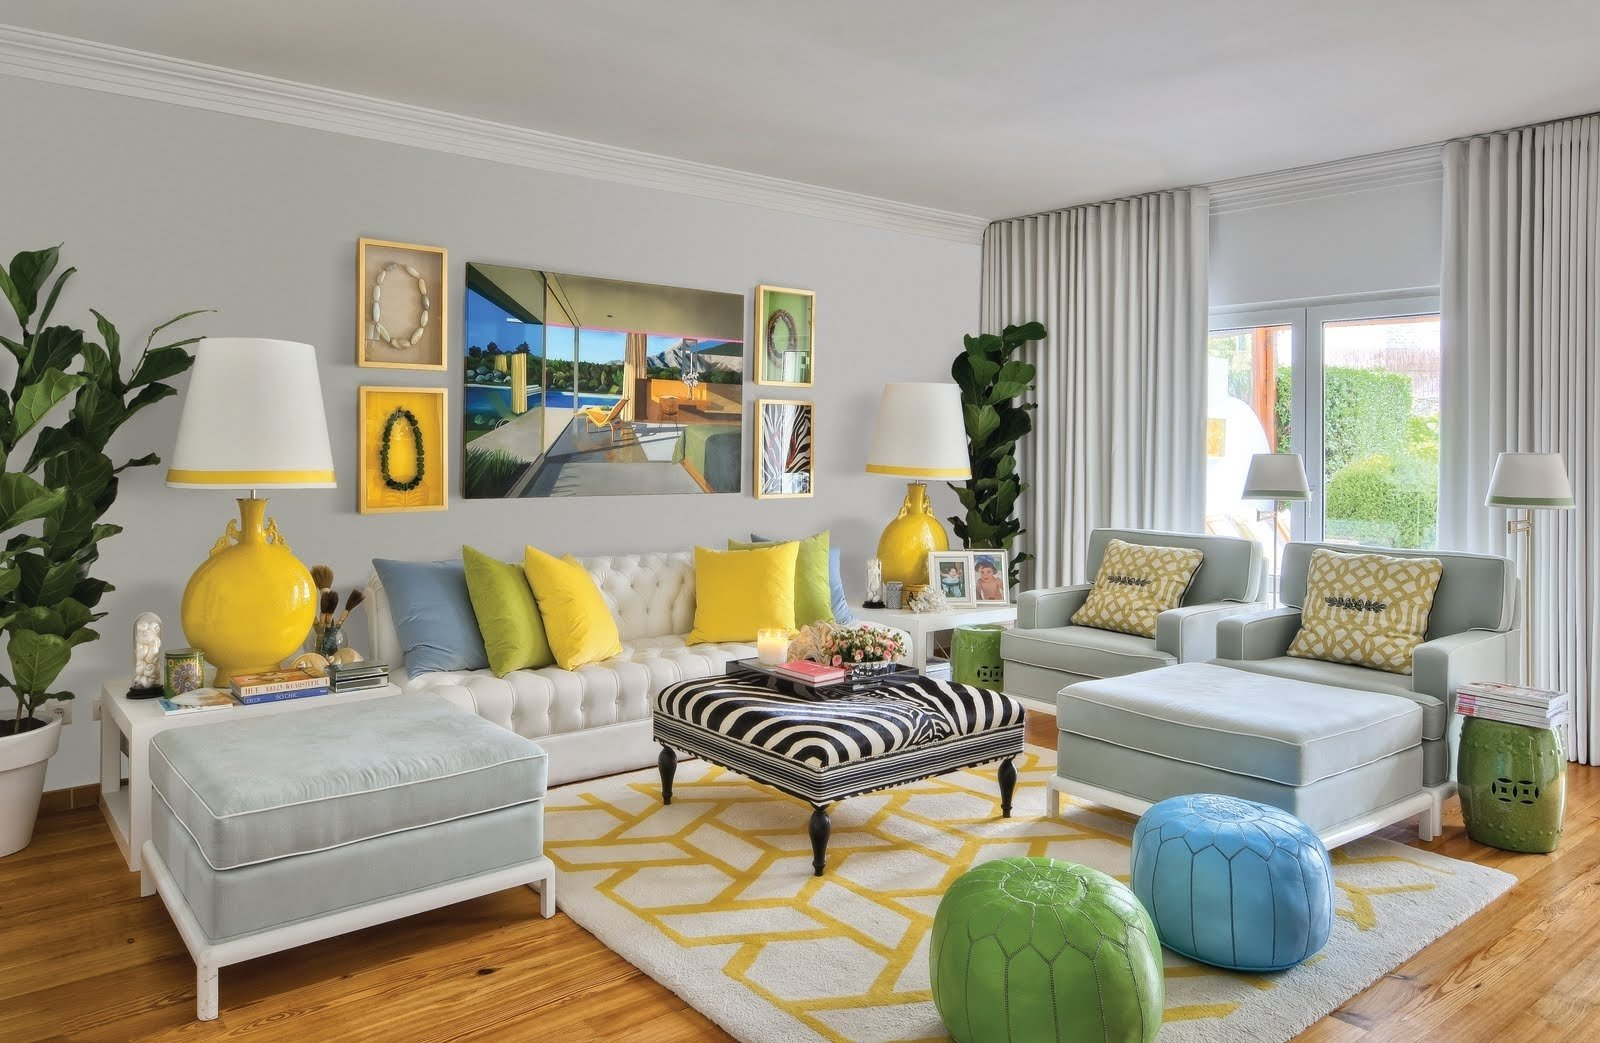 10 Beautiful Grey And Yellow Living Room Ideas best gray and yellow living room incredible homes best ideas 1 2020